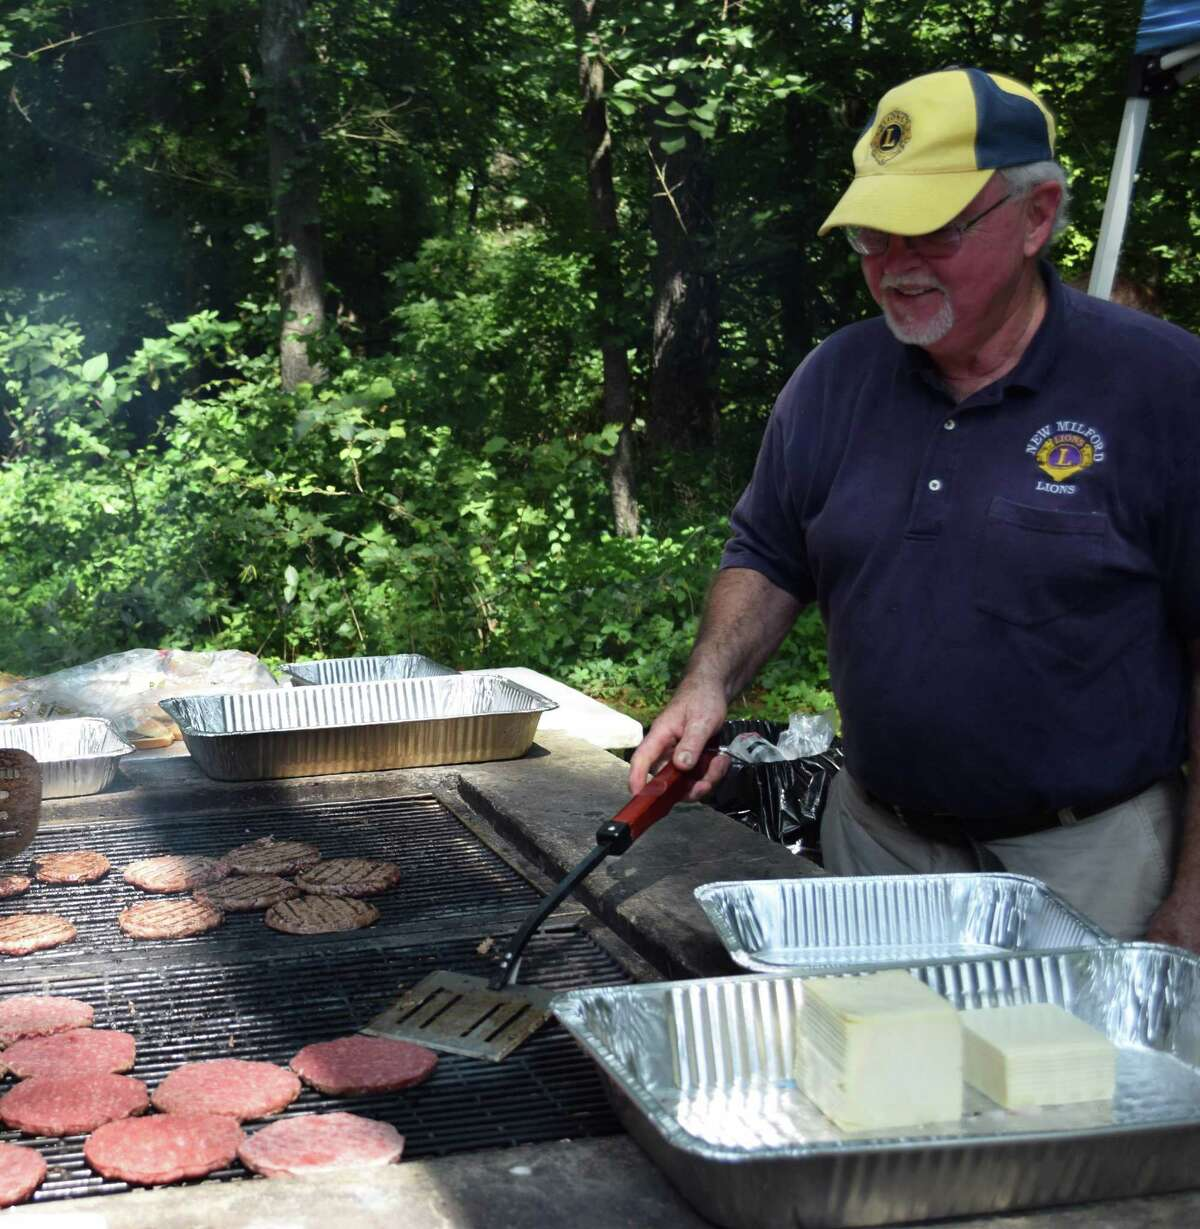 New Milford Lions Club president Jim Bannan oversees the grill as he and other Lions serve traditional picnic fare to local seniors.